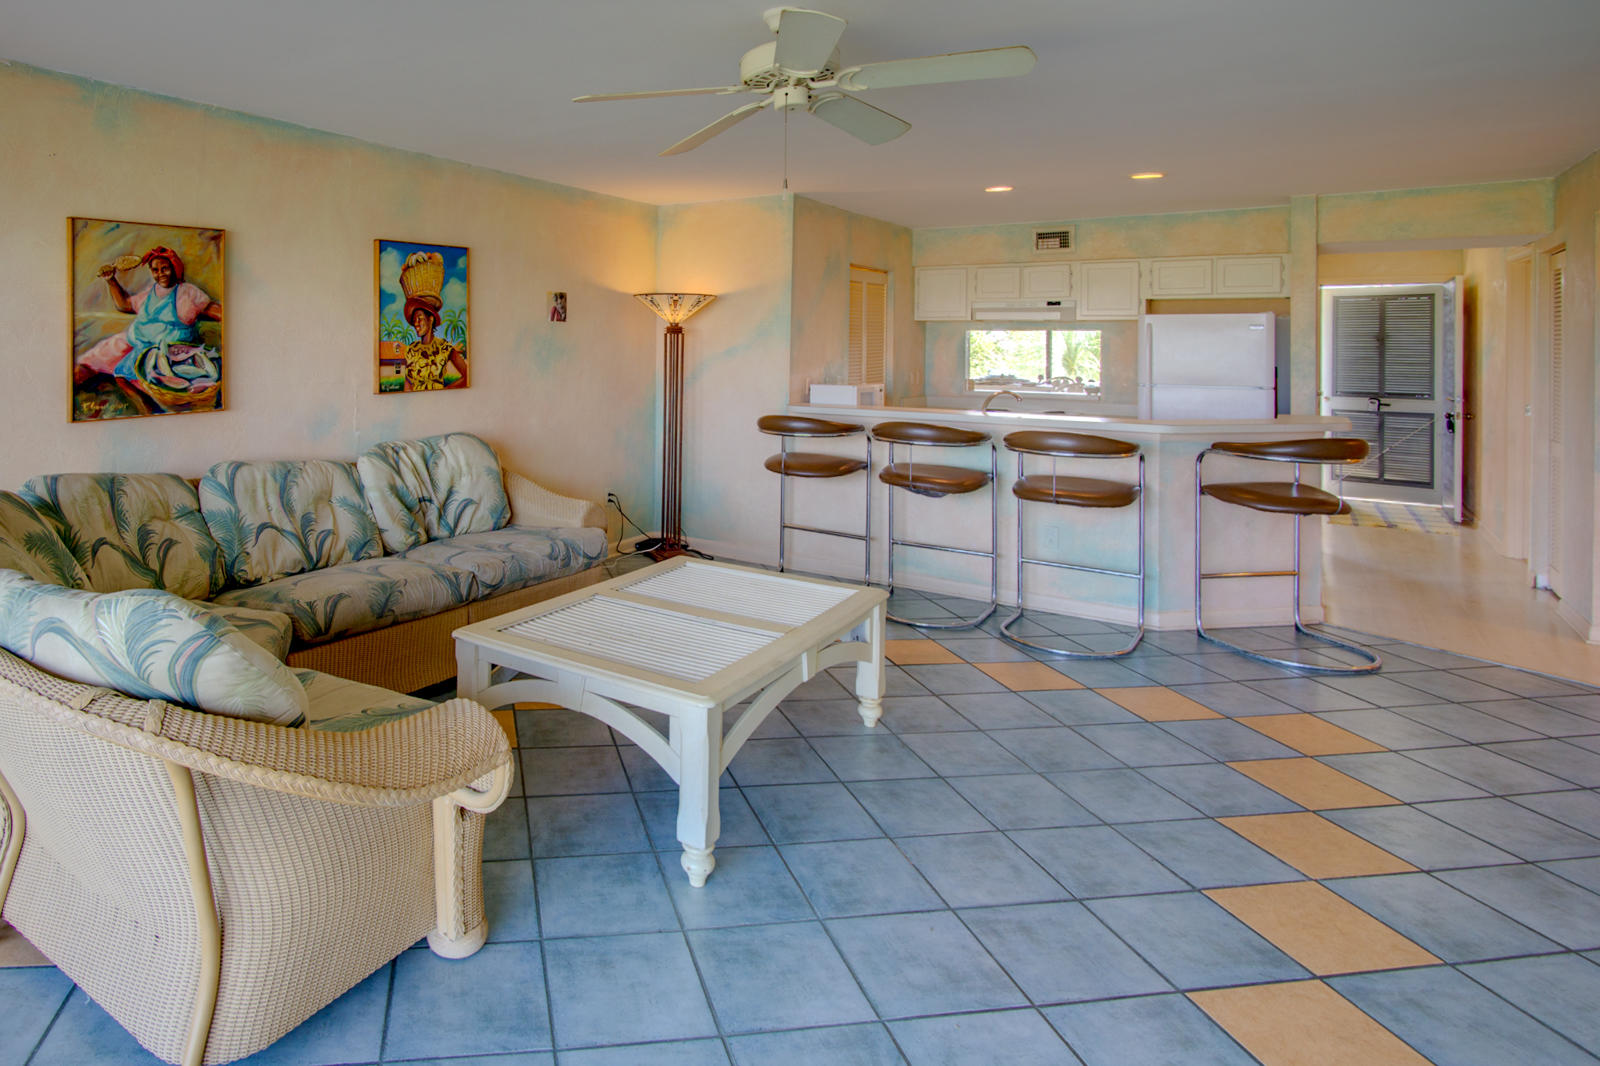 Mariners Cay Homes For Sale - 105 Mariners Cay, Folly Beach, SC - 22